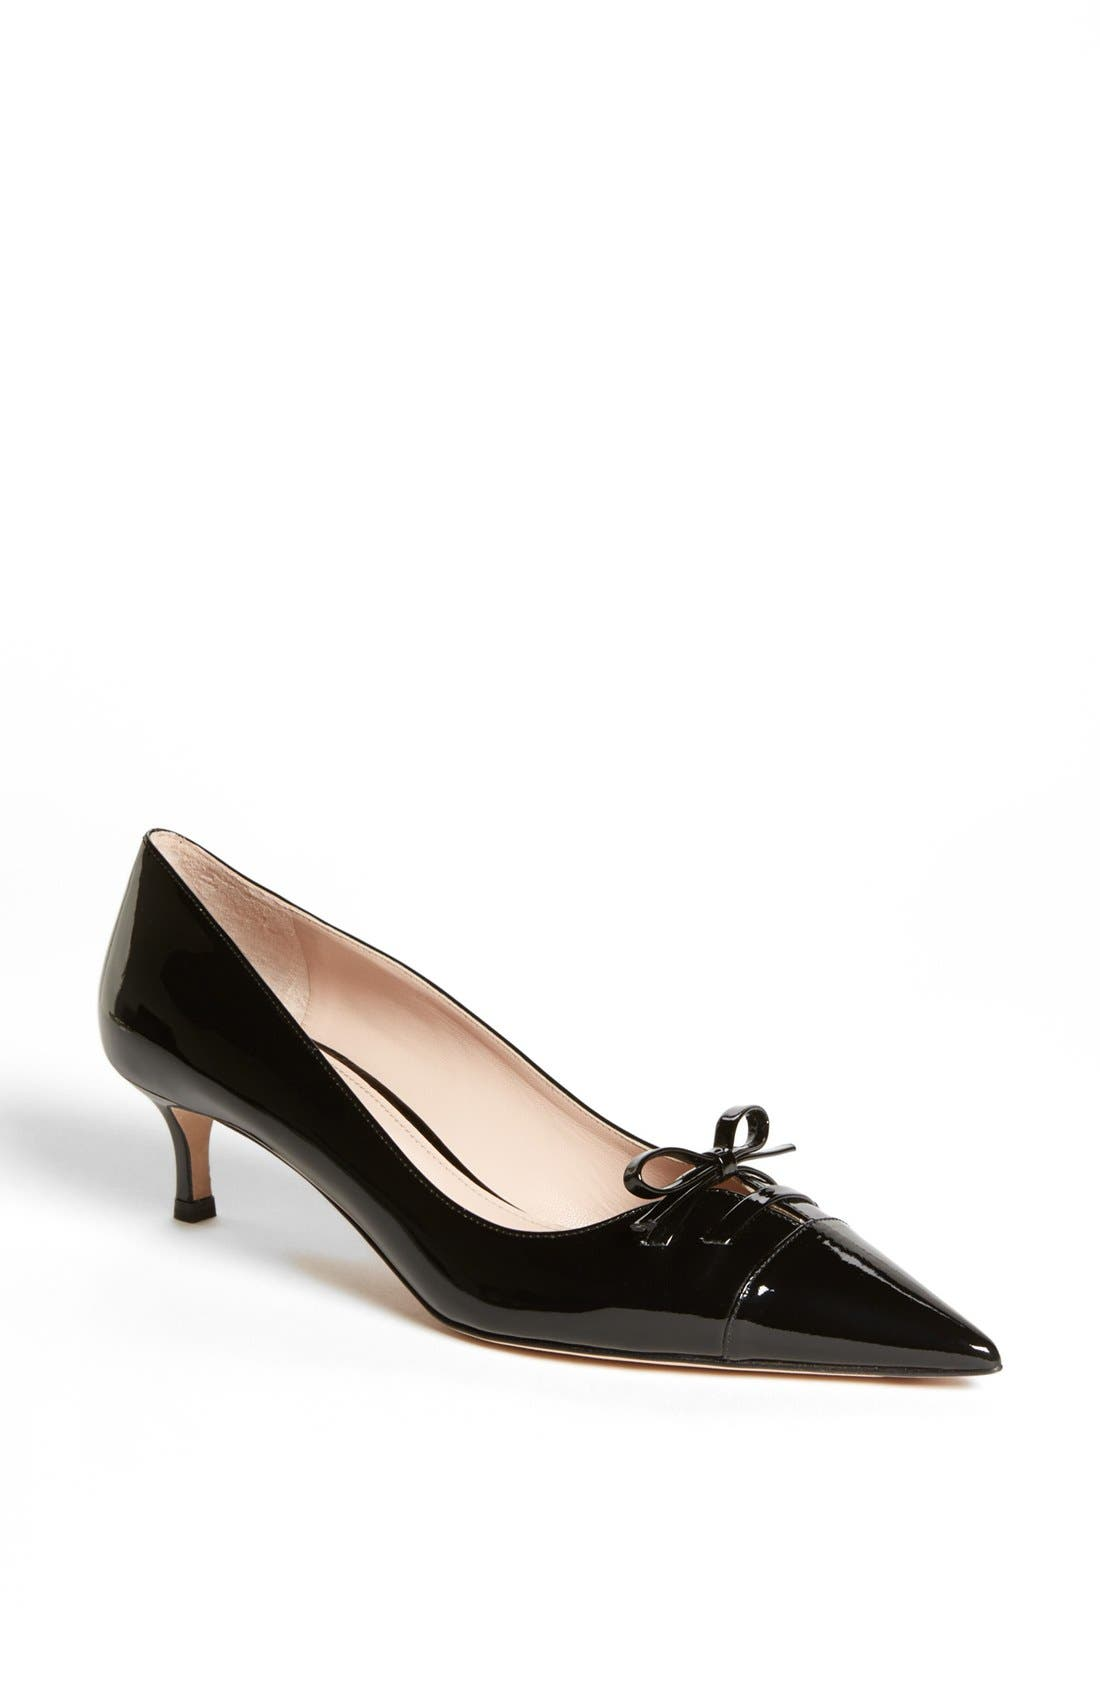 Main Image - Miu Miu Pointed Toe Bow Pump